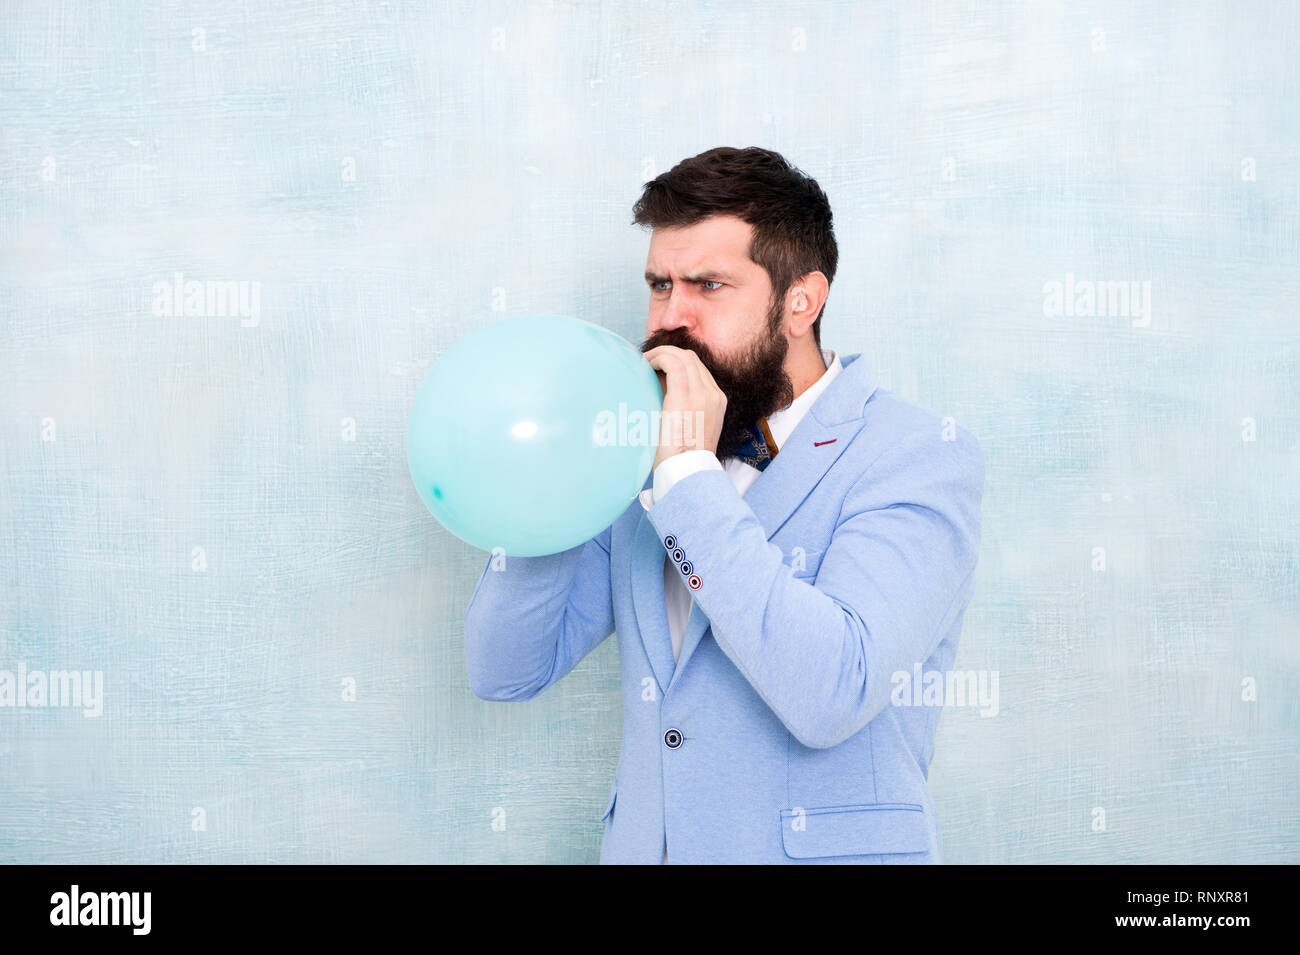 Man inflating a blue balloon. Bearded man with balloon. Happy birthday. preparation to party, celebration. Praparation to birthday party. Birthday party balloon. Party balloon. stylish event manager. - Stock Image